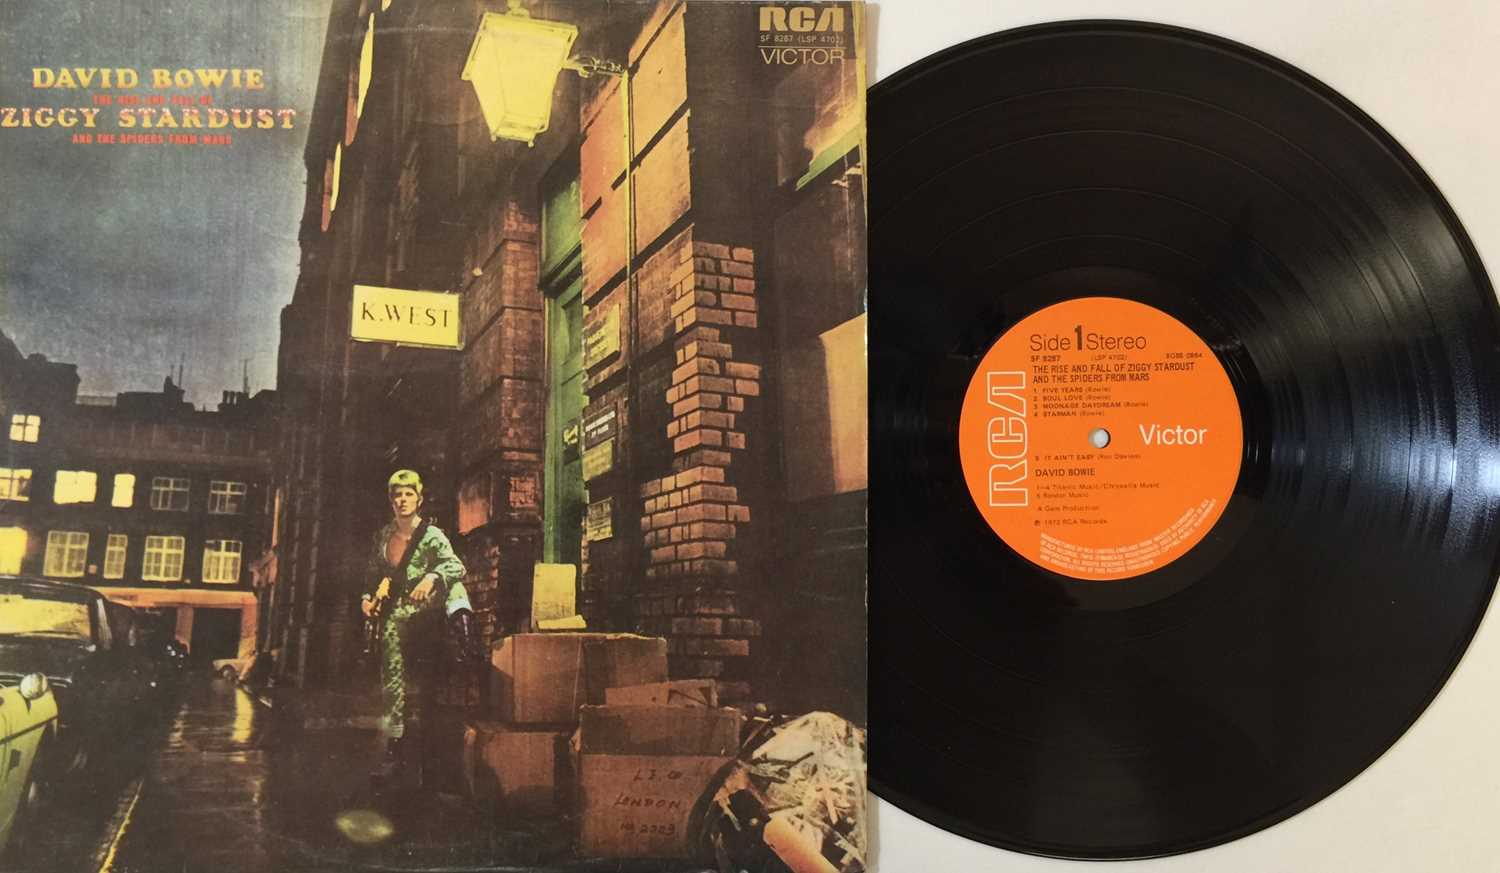 DAVID BOWIE - UK PRESSING LP COLLECTION - Image 6 of 7